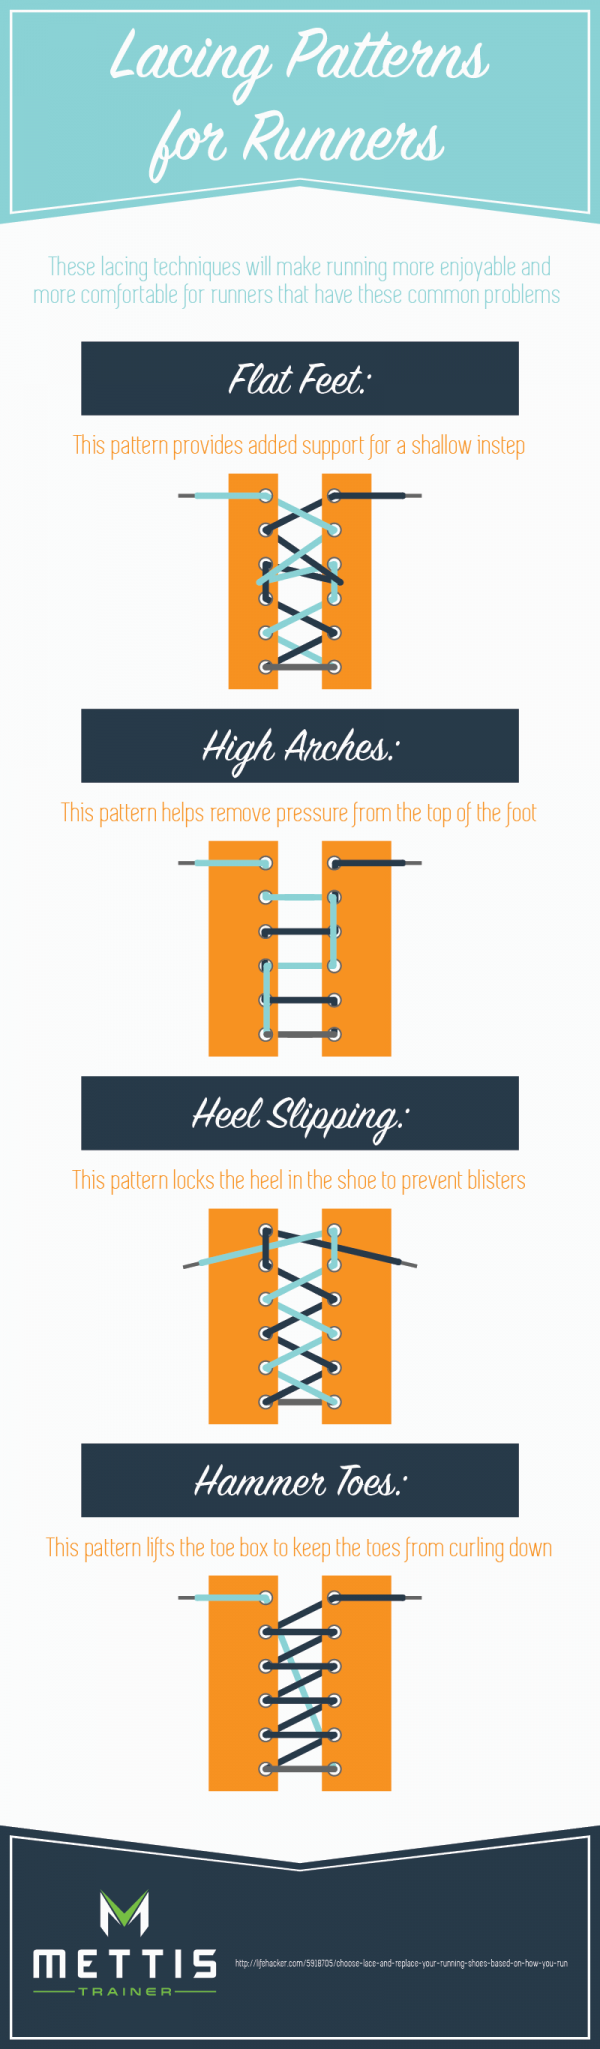 Lacing Patterns for Runners